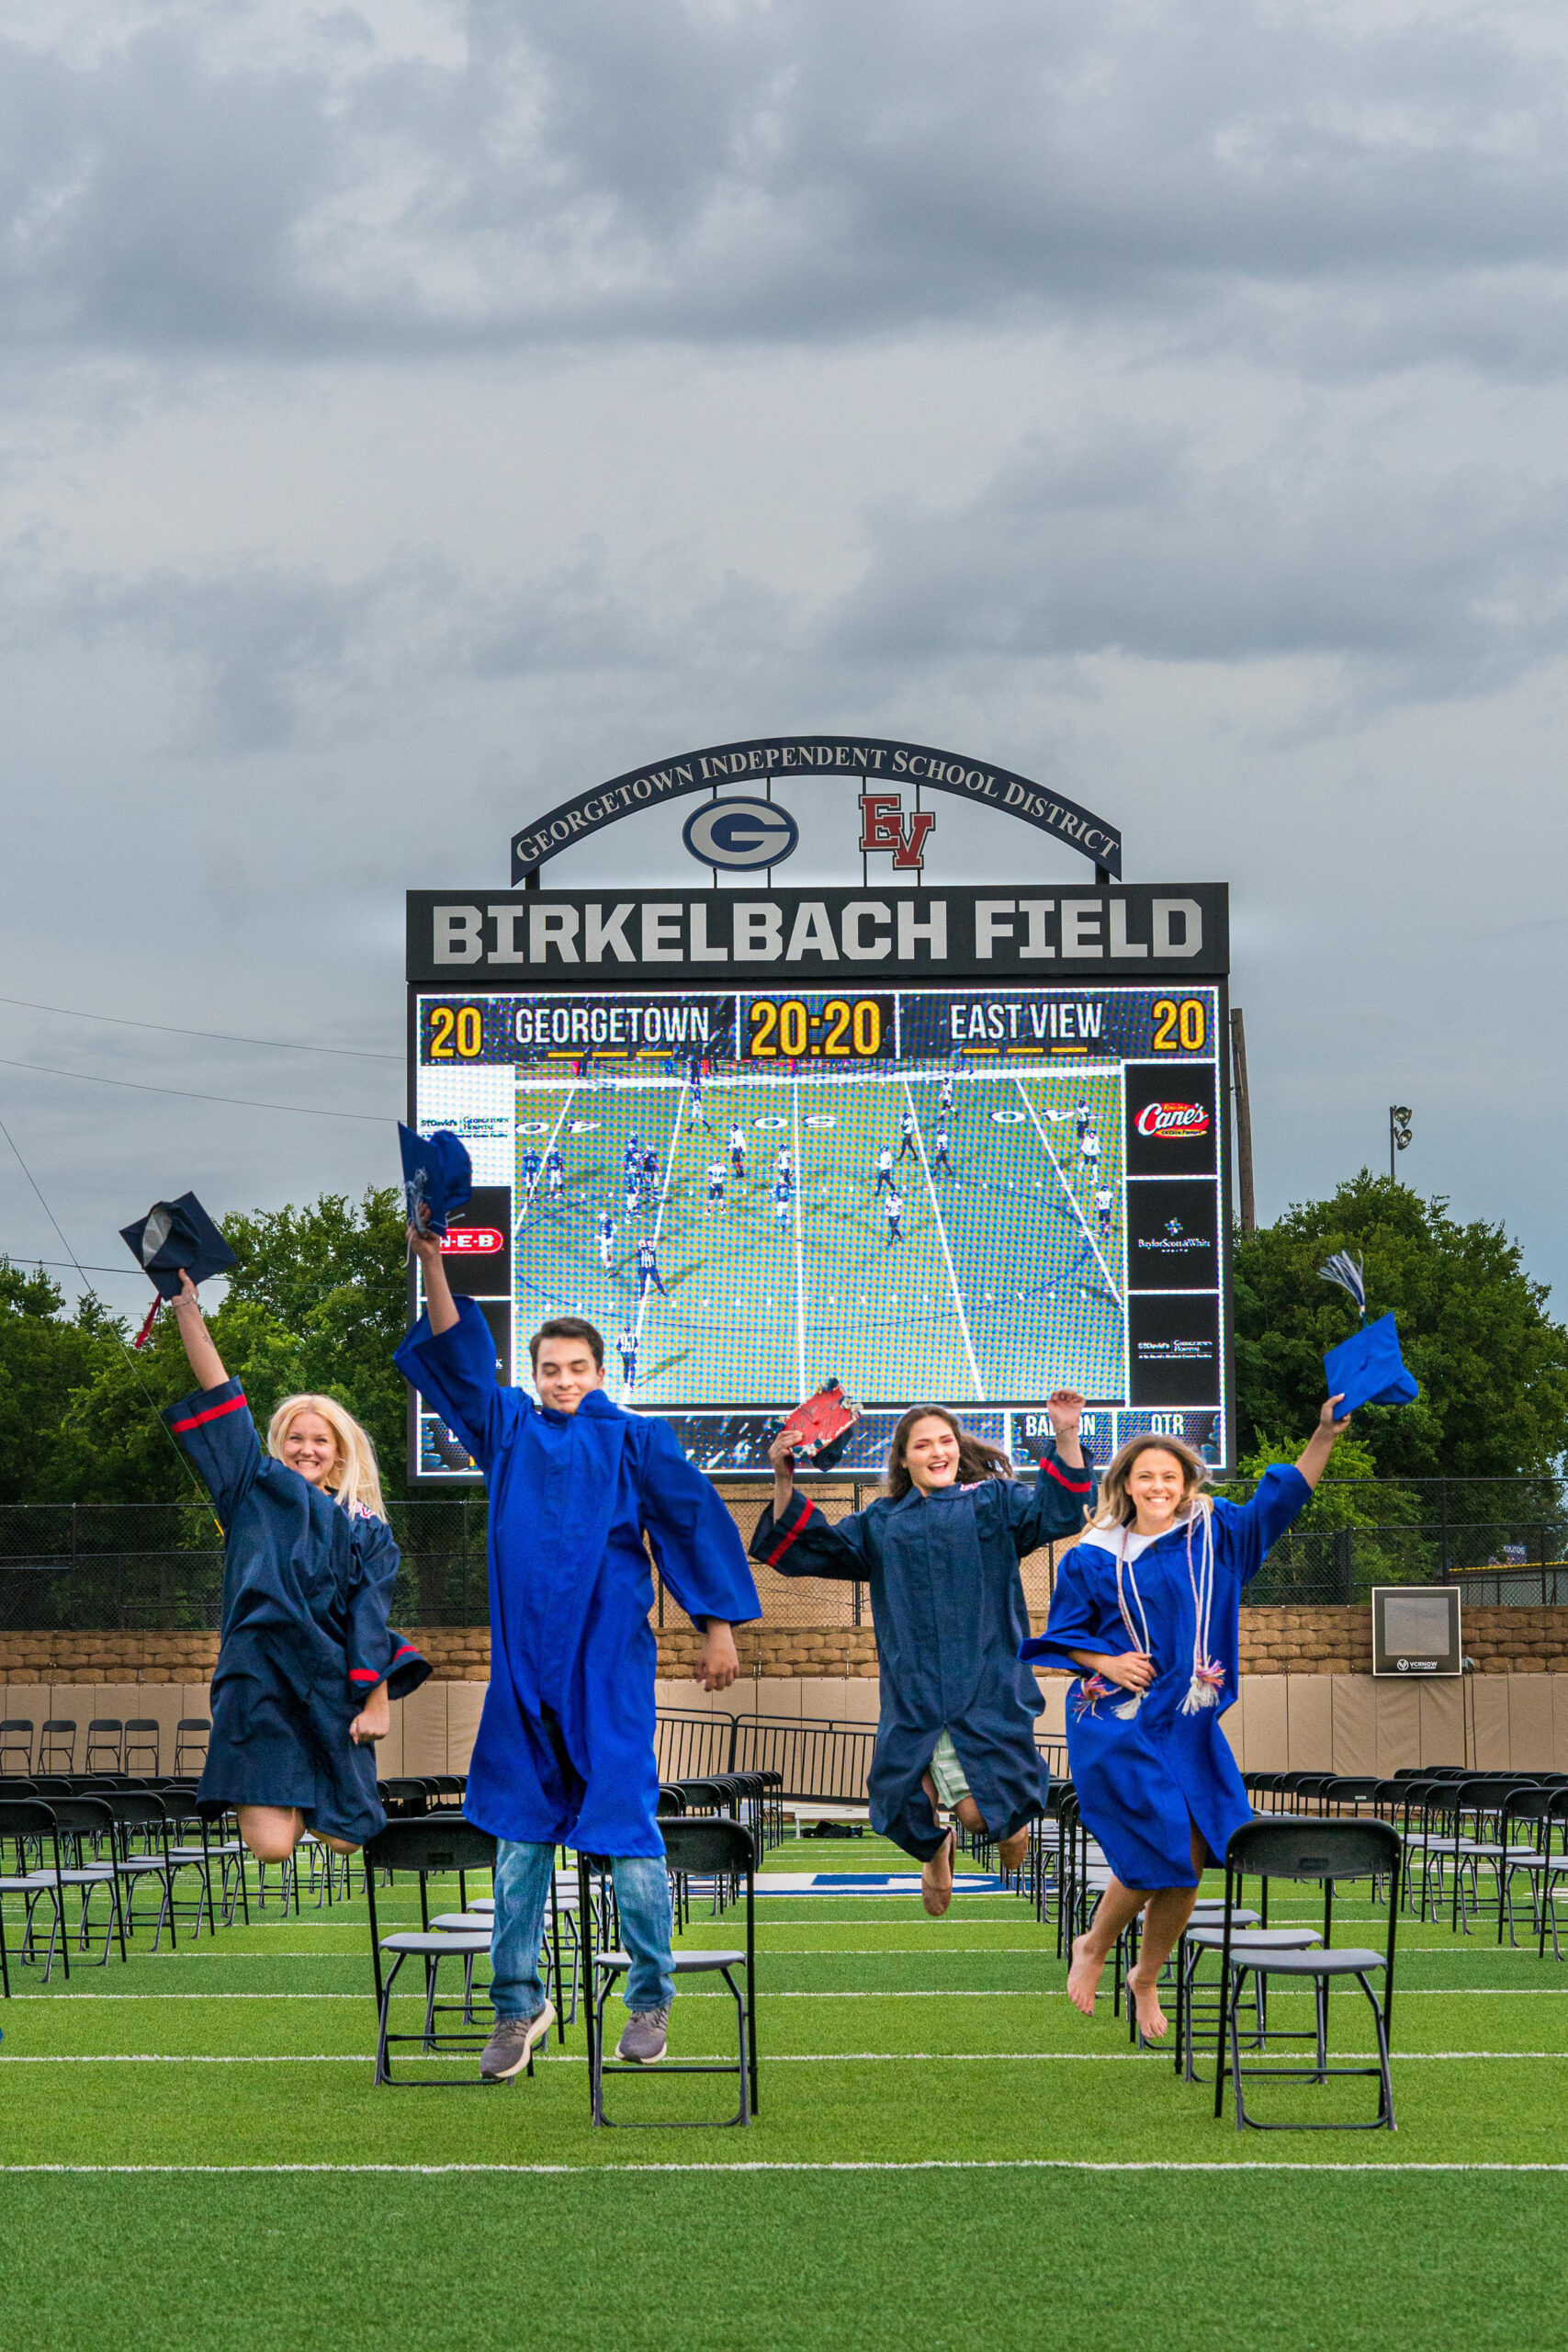 Georgetown and East View  High School seniors Kaylin Vrabel, Maverick Tomaszewski,  Jacky Meixsell and Taylor Wood celebrate their commencement at the GISD sports complex.  Graduations took place May 29-31. Photo by Rudy Ximenez